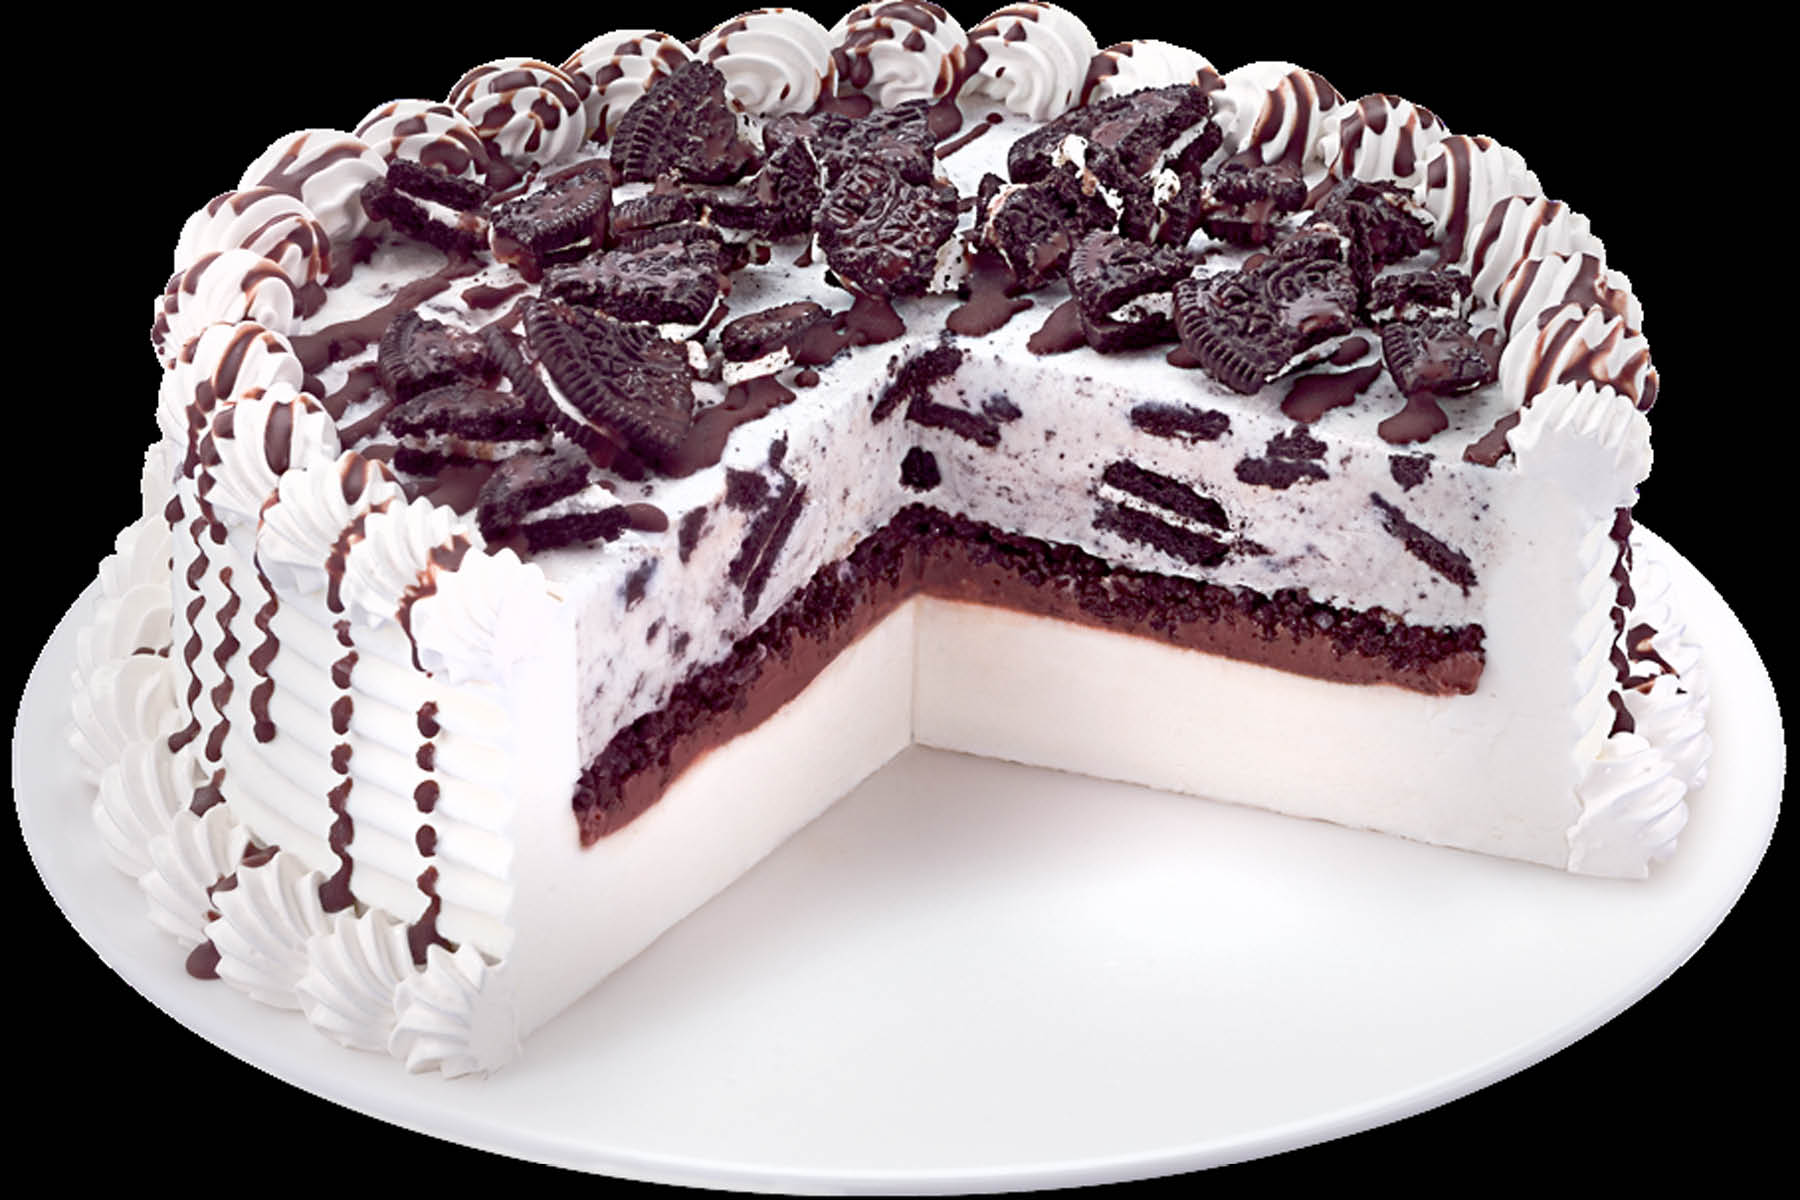 Dairy Queen's Blizzard cakes, Ice Cream Cakes